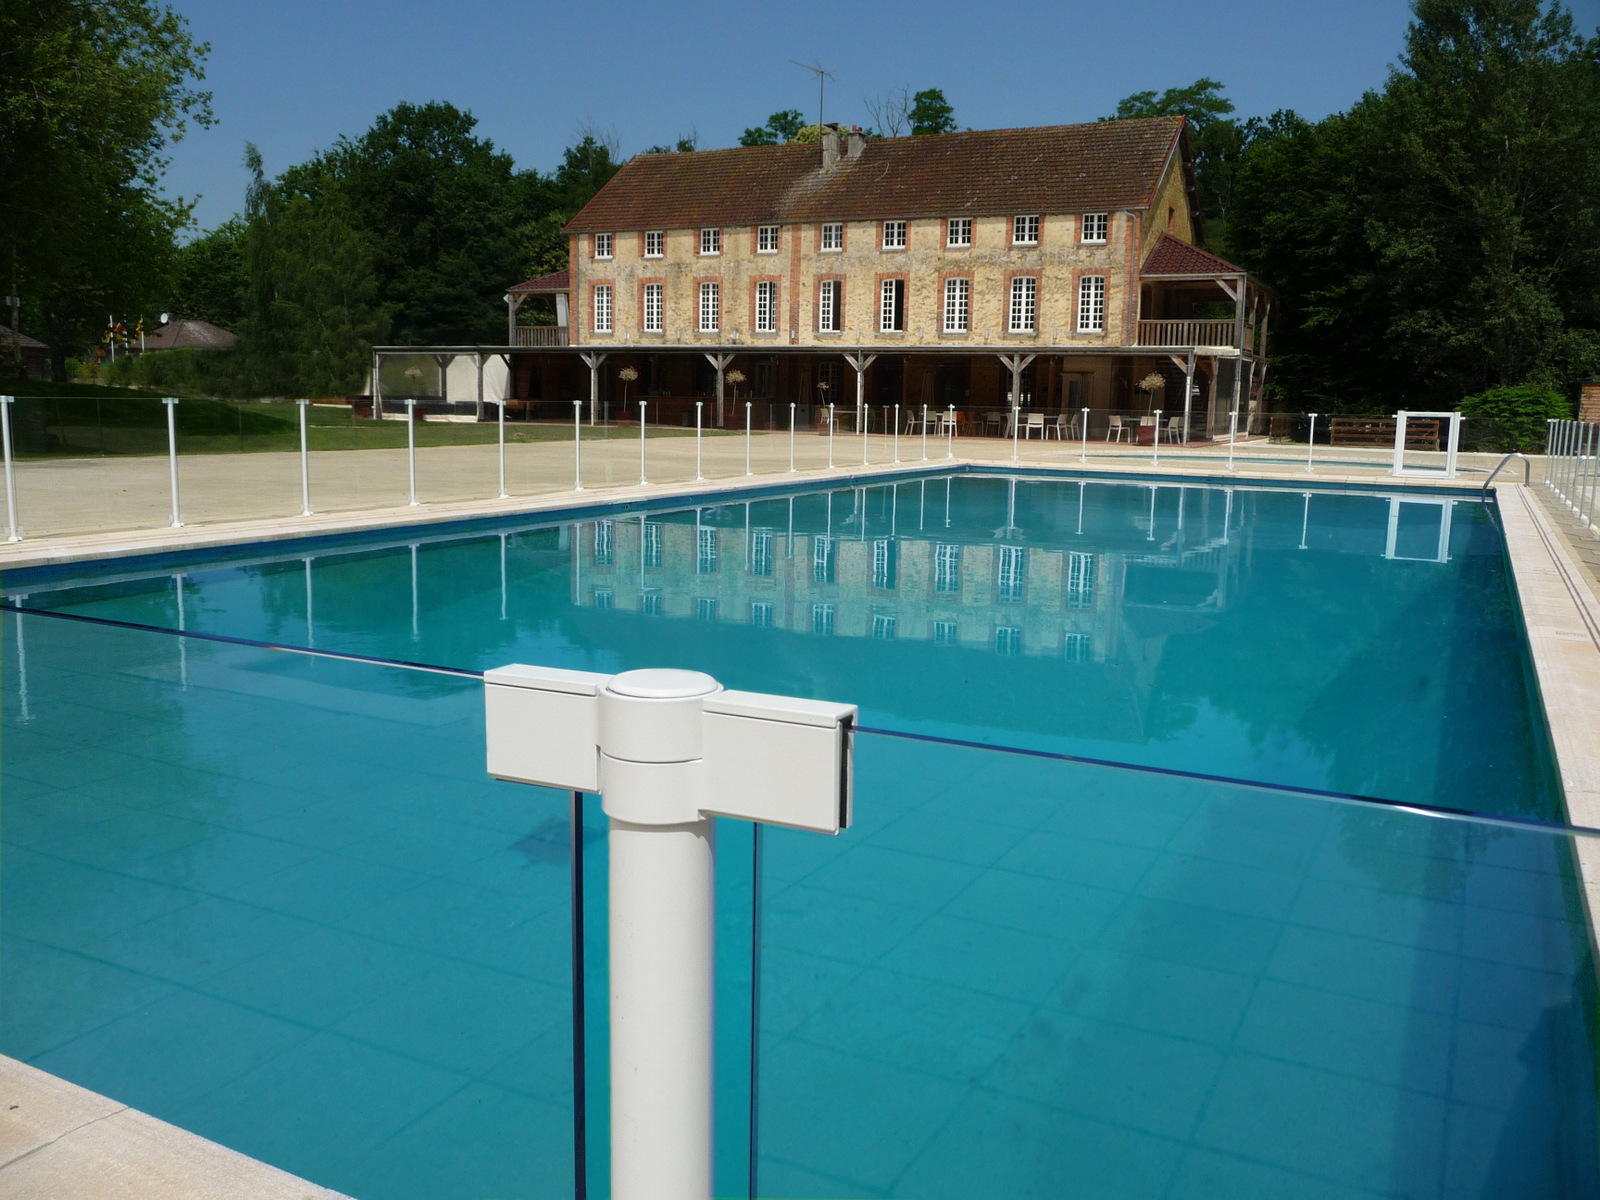 Barri re de piscine en aluminium et protection aluminium for Piscine gonflable 2m